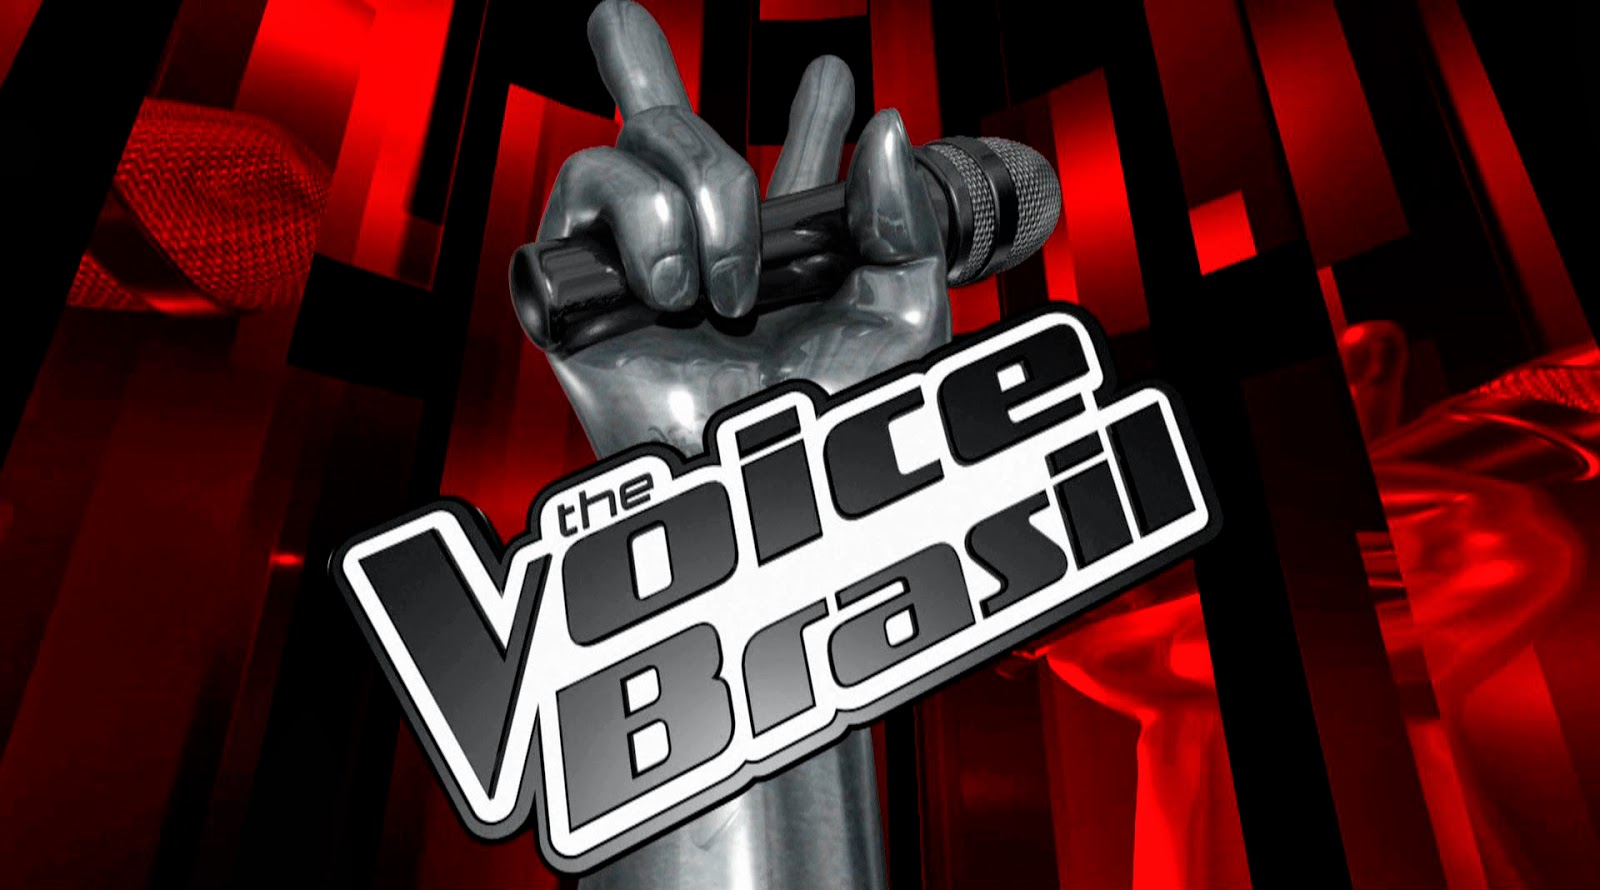 Download – The Voice Brasil – S02E05 – HDTV